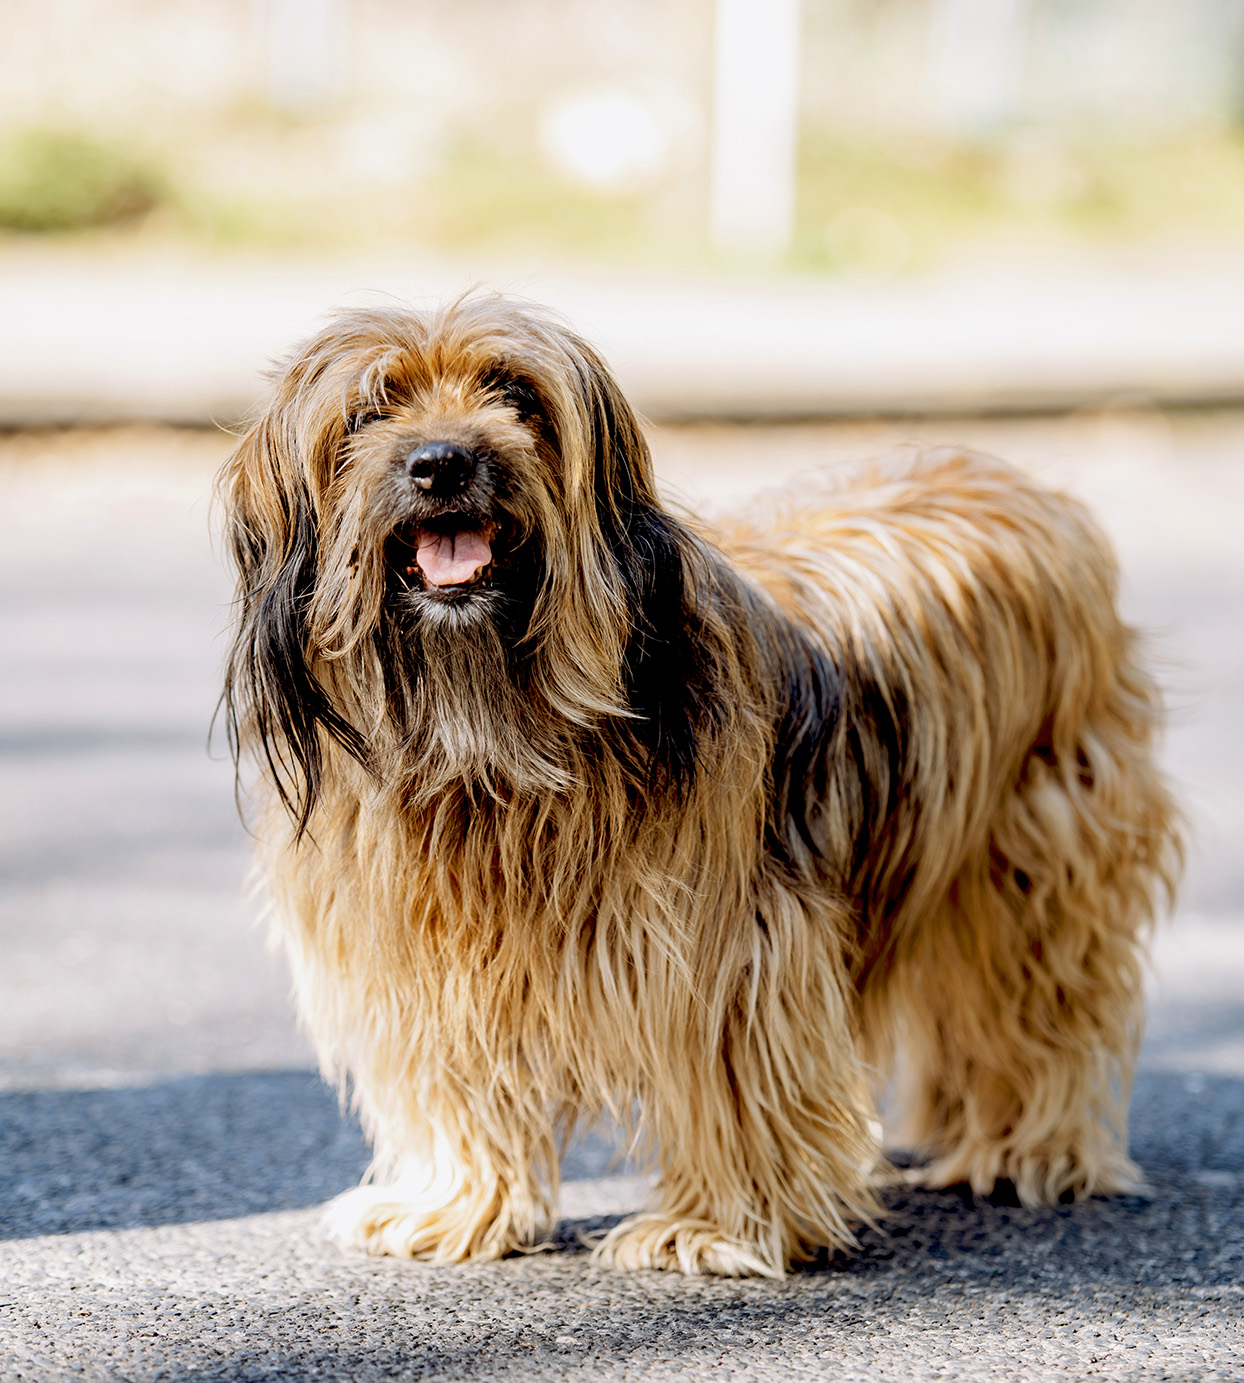 Longhaired blonde tibetan terrier stands on concrete